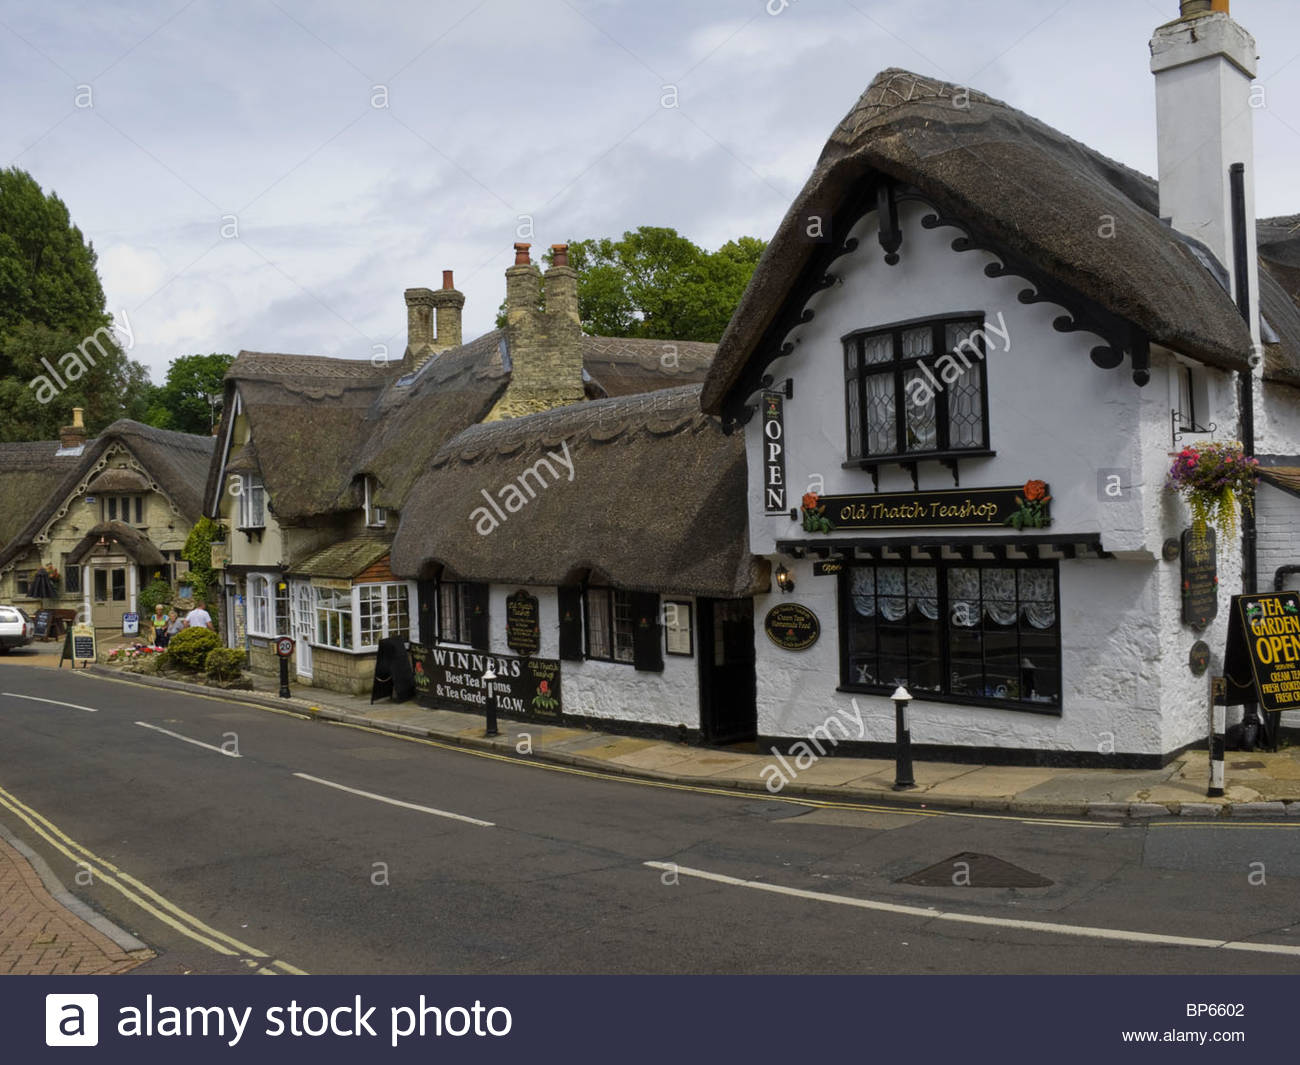 Isl of Wight Shanklin Tea Rooms - Stock Image